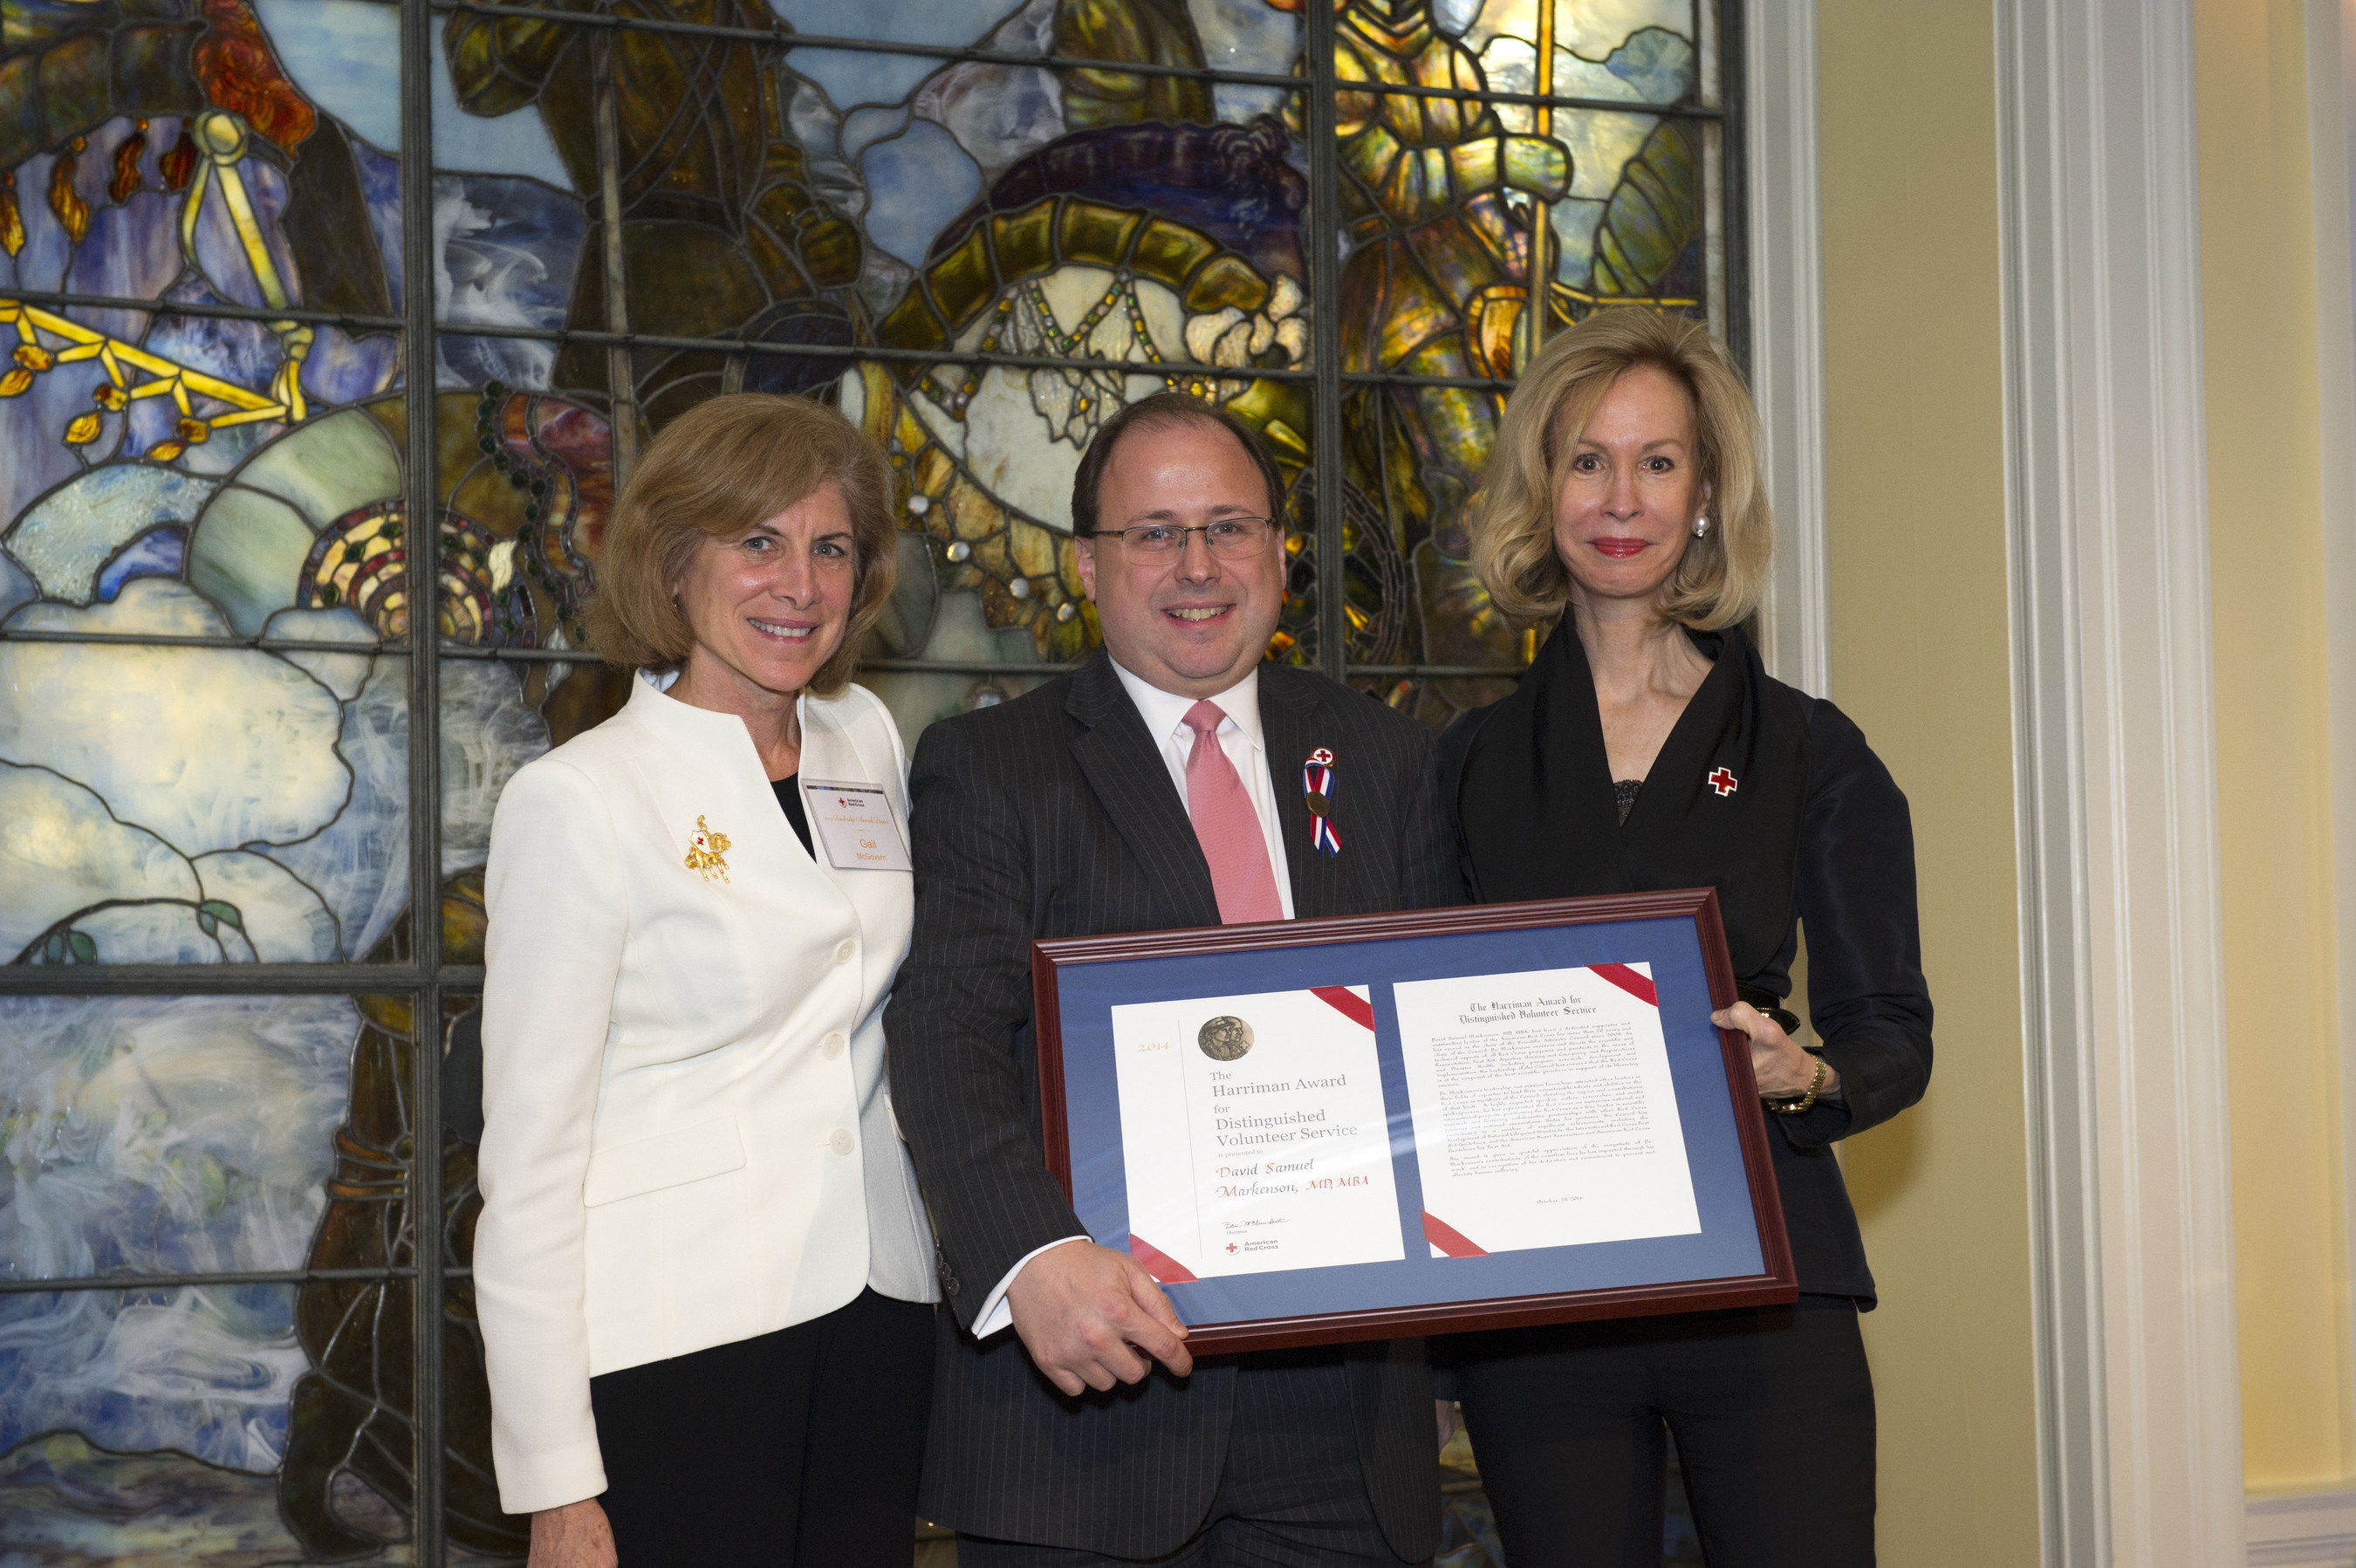 Dr. David Markenson (center) with Gail J. McGovern, CEO, American Red Cross and Bonnie McElveen-Hunter, Chair of the Board, American Red Cross.